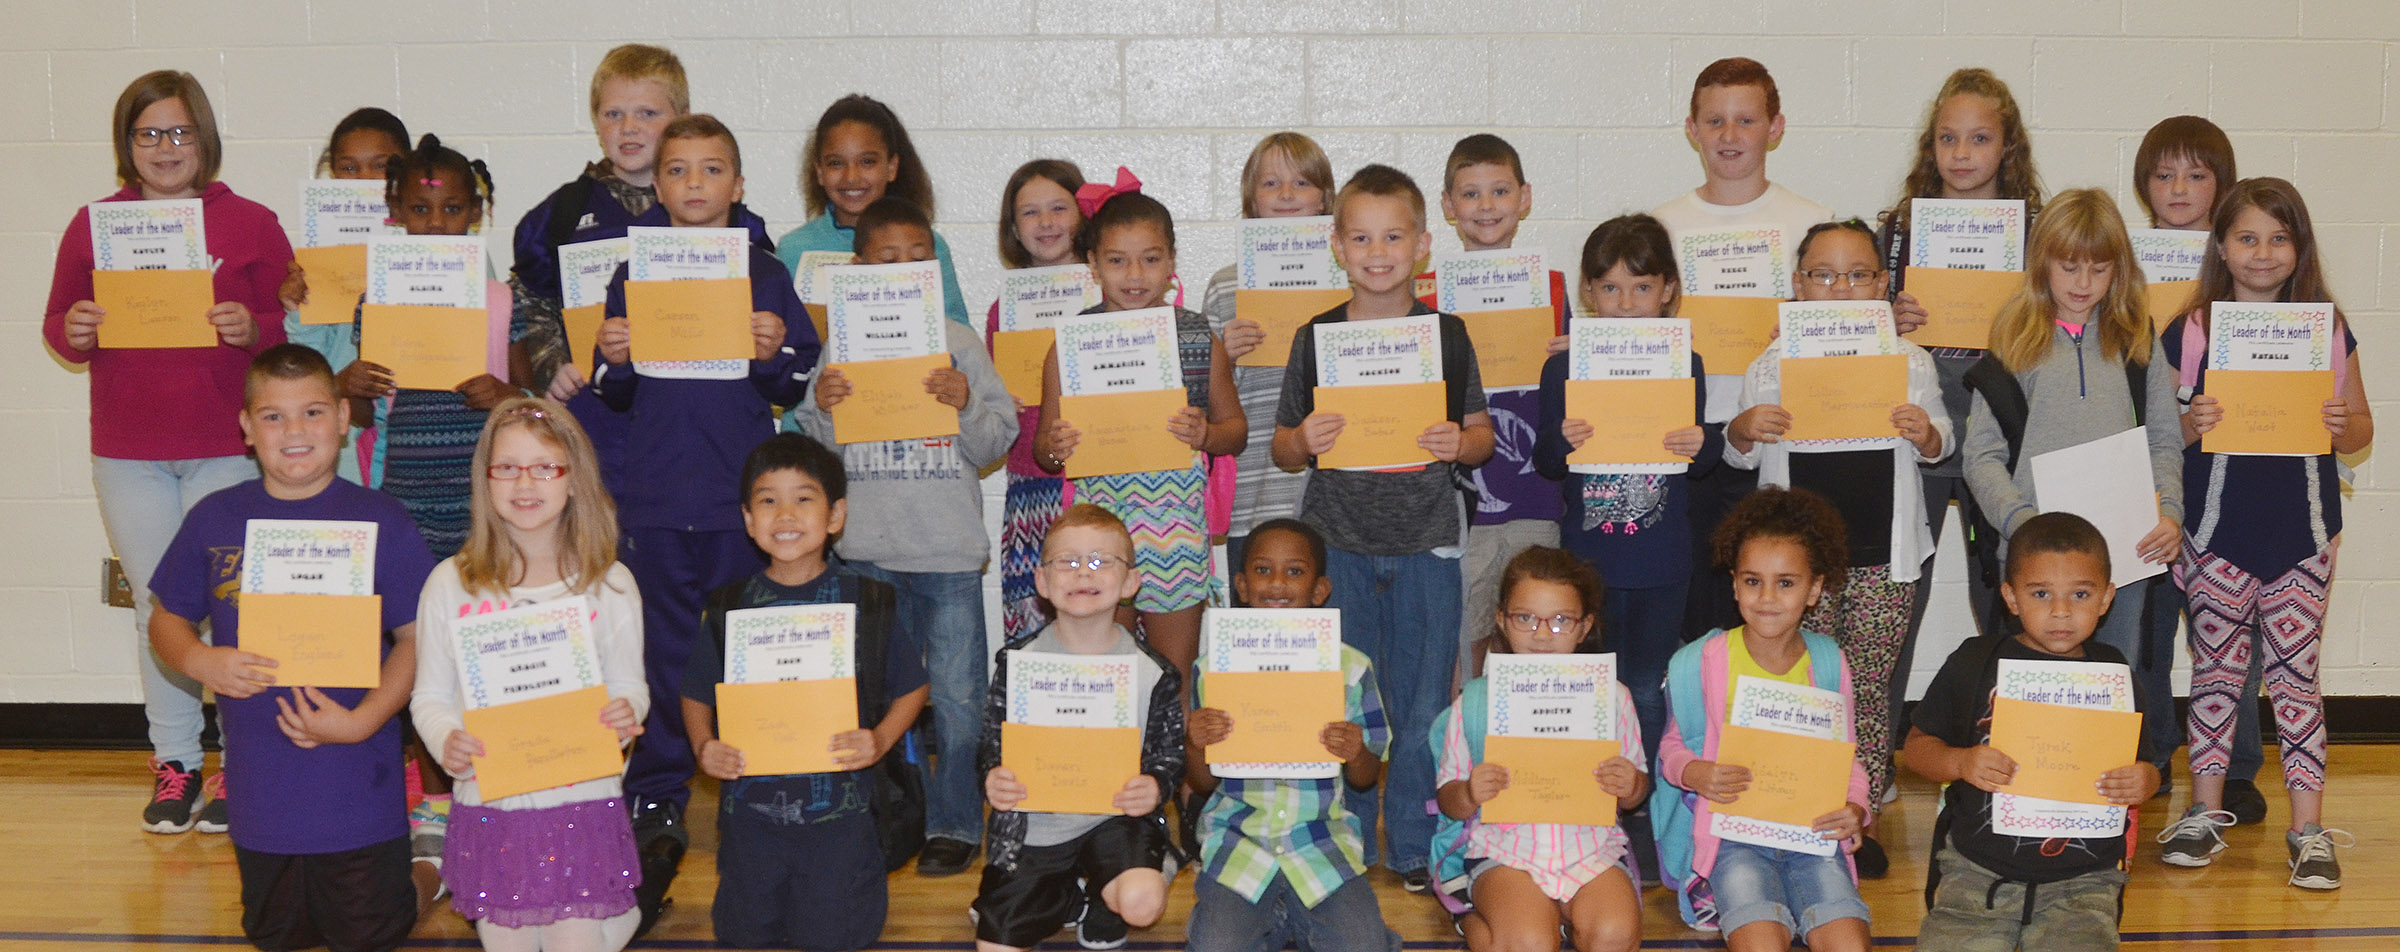 From left, front, are fifth-grader Logan England, fourth-grader Gracie Pendleton, second-grader Zach Hak, first-graders Daven Davis and Kasen Smith and kindergarteners Addisyn Taylor and Adelyn Litsey and Tyrek Moore. Second row, kindergartener Alaina Bridgewater, fourth-grader Carson Mills, first-grader Elijah Williams, second-graders Ammarissa Nunez and Jackson Bates, first-grader Serenity Jones, kindergartener Lillian Merriweather, second-grader Summer Daniels and third-grader Natalia West. Back, fifth-graders Kaylyn Lawson, Jaclyn Jackson and Simon Wilkerson, fourth-grader Aleecia Knezevic, third-grader Evelyn Stancill, fourth-grader Devin Underwood, third-graders Ryan Tungate and Reece Swafford and fifth-graders Deanna Reardon and Kanan Bruce.